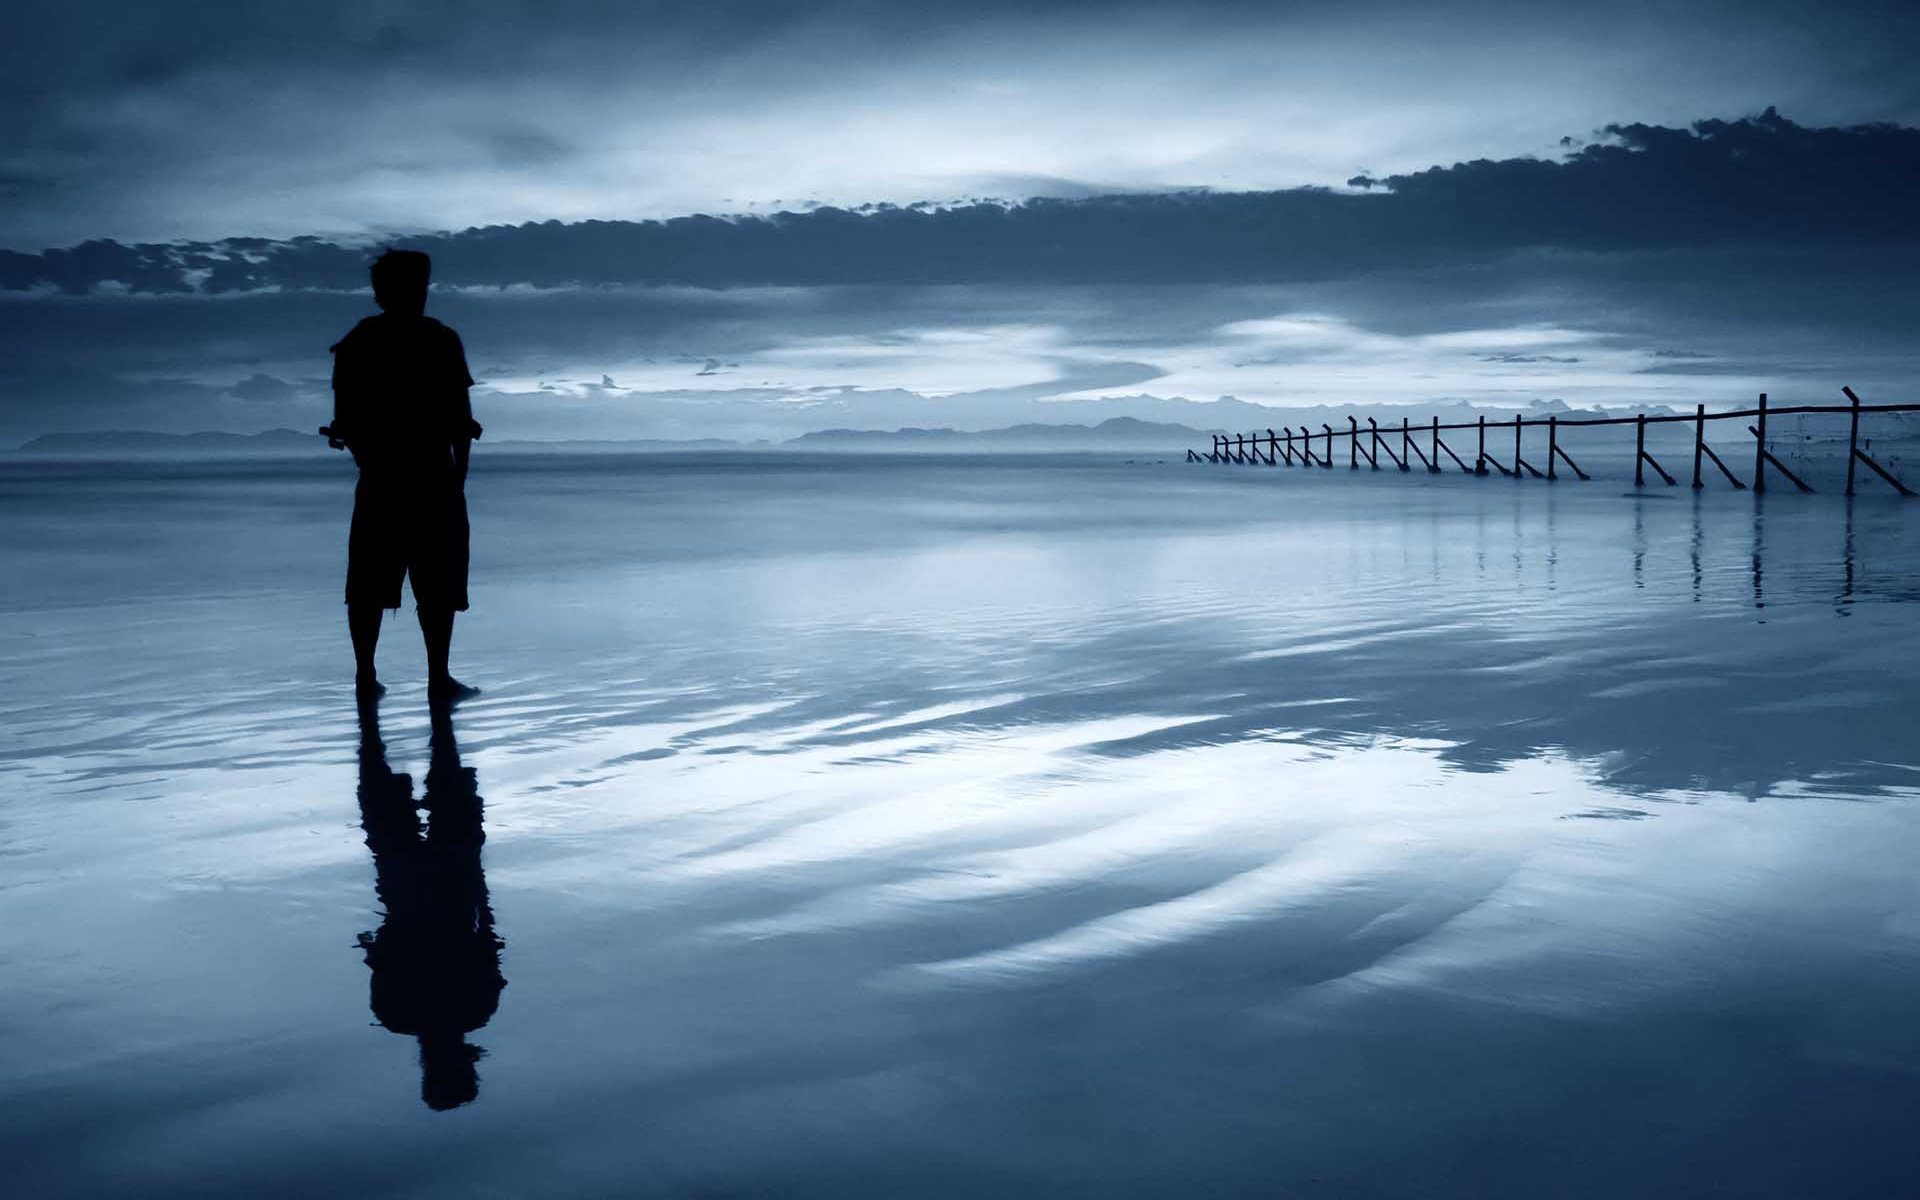 loneliness wallpapers, photos and desktop backgrounds up ...